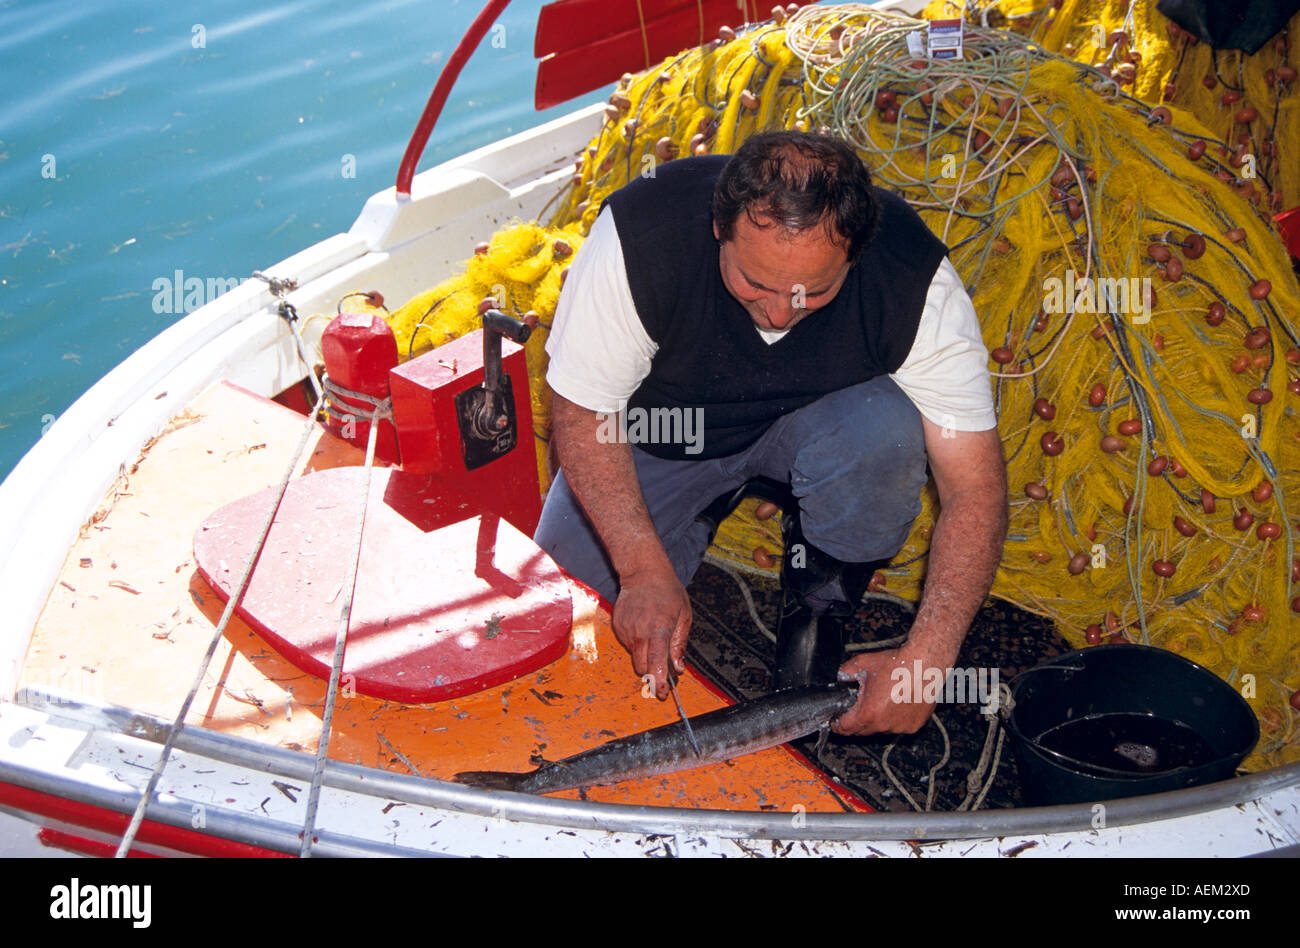 Fisherman cutting fish on his boat moored at the quayside, Argostoli, Kefalonia, Greece - Stock Image